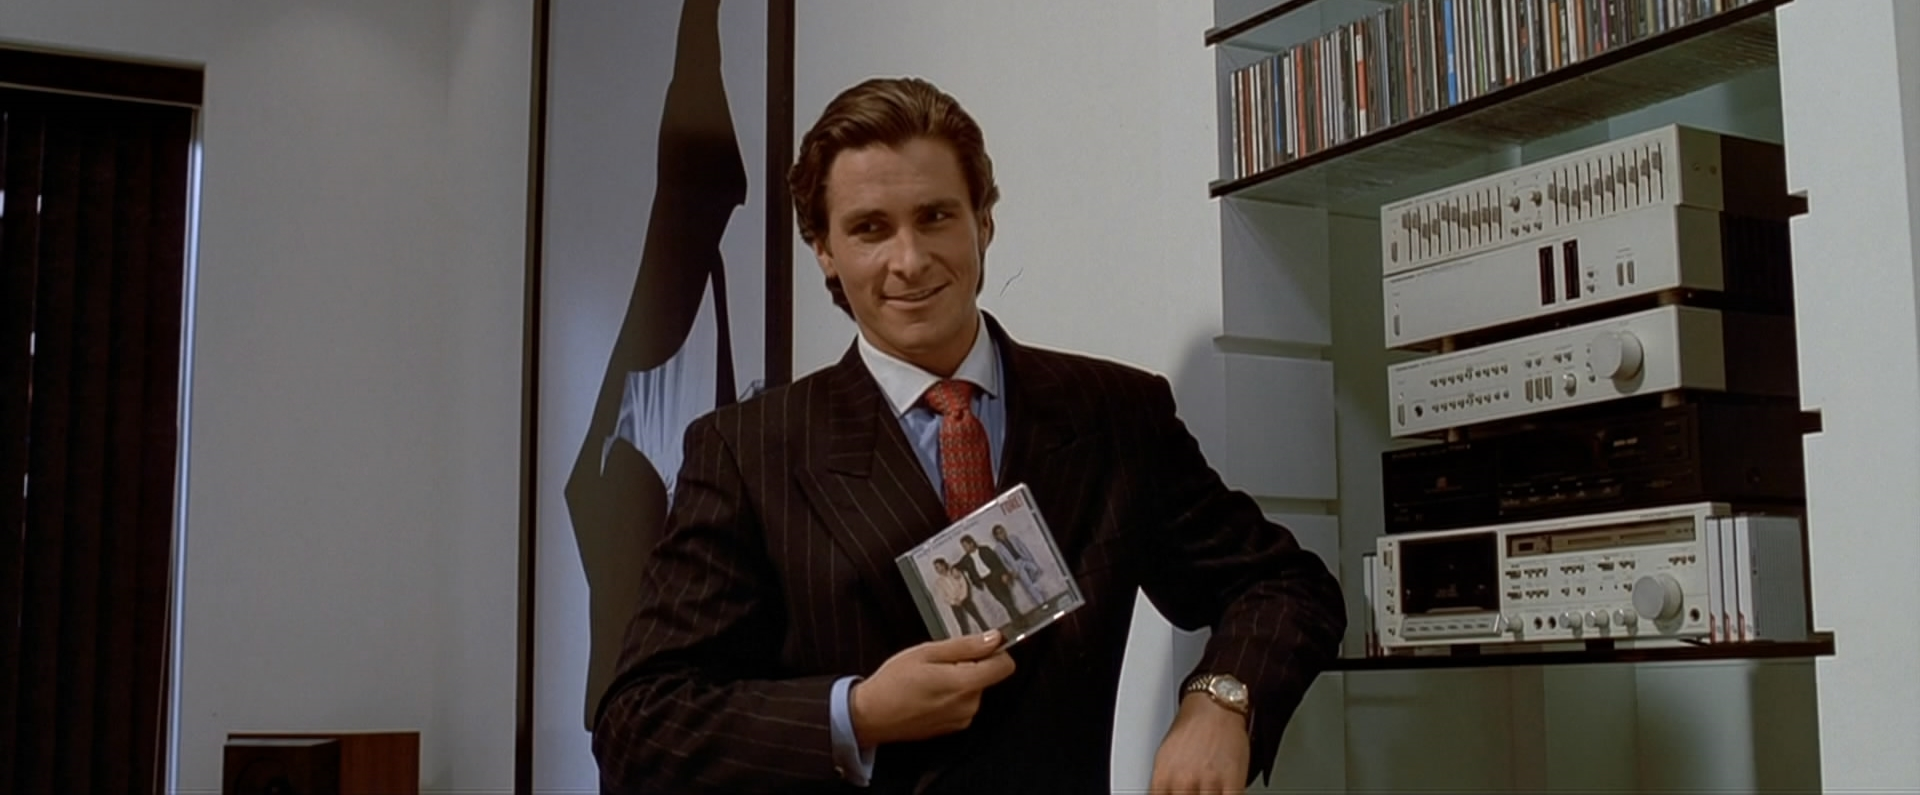 Song for a sunday hip to be square huey lewis and the news song for a sunday hip to be square huey lewis and the news reheart Choice Image